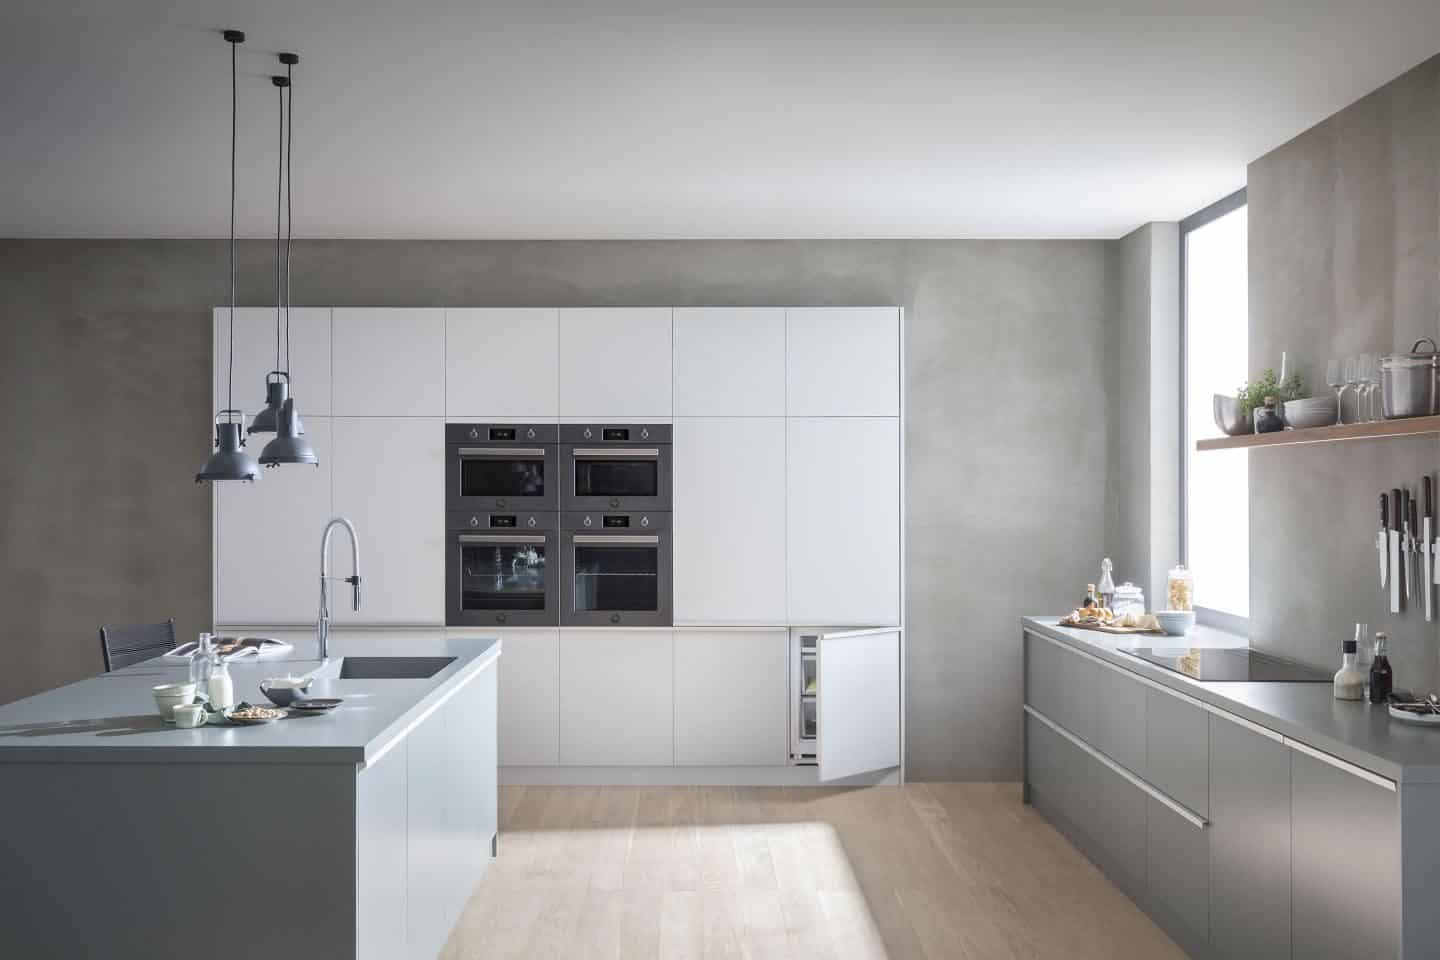 Bertazzoni's built-in appliance range shown in a minimal modern kitchen